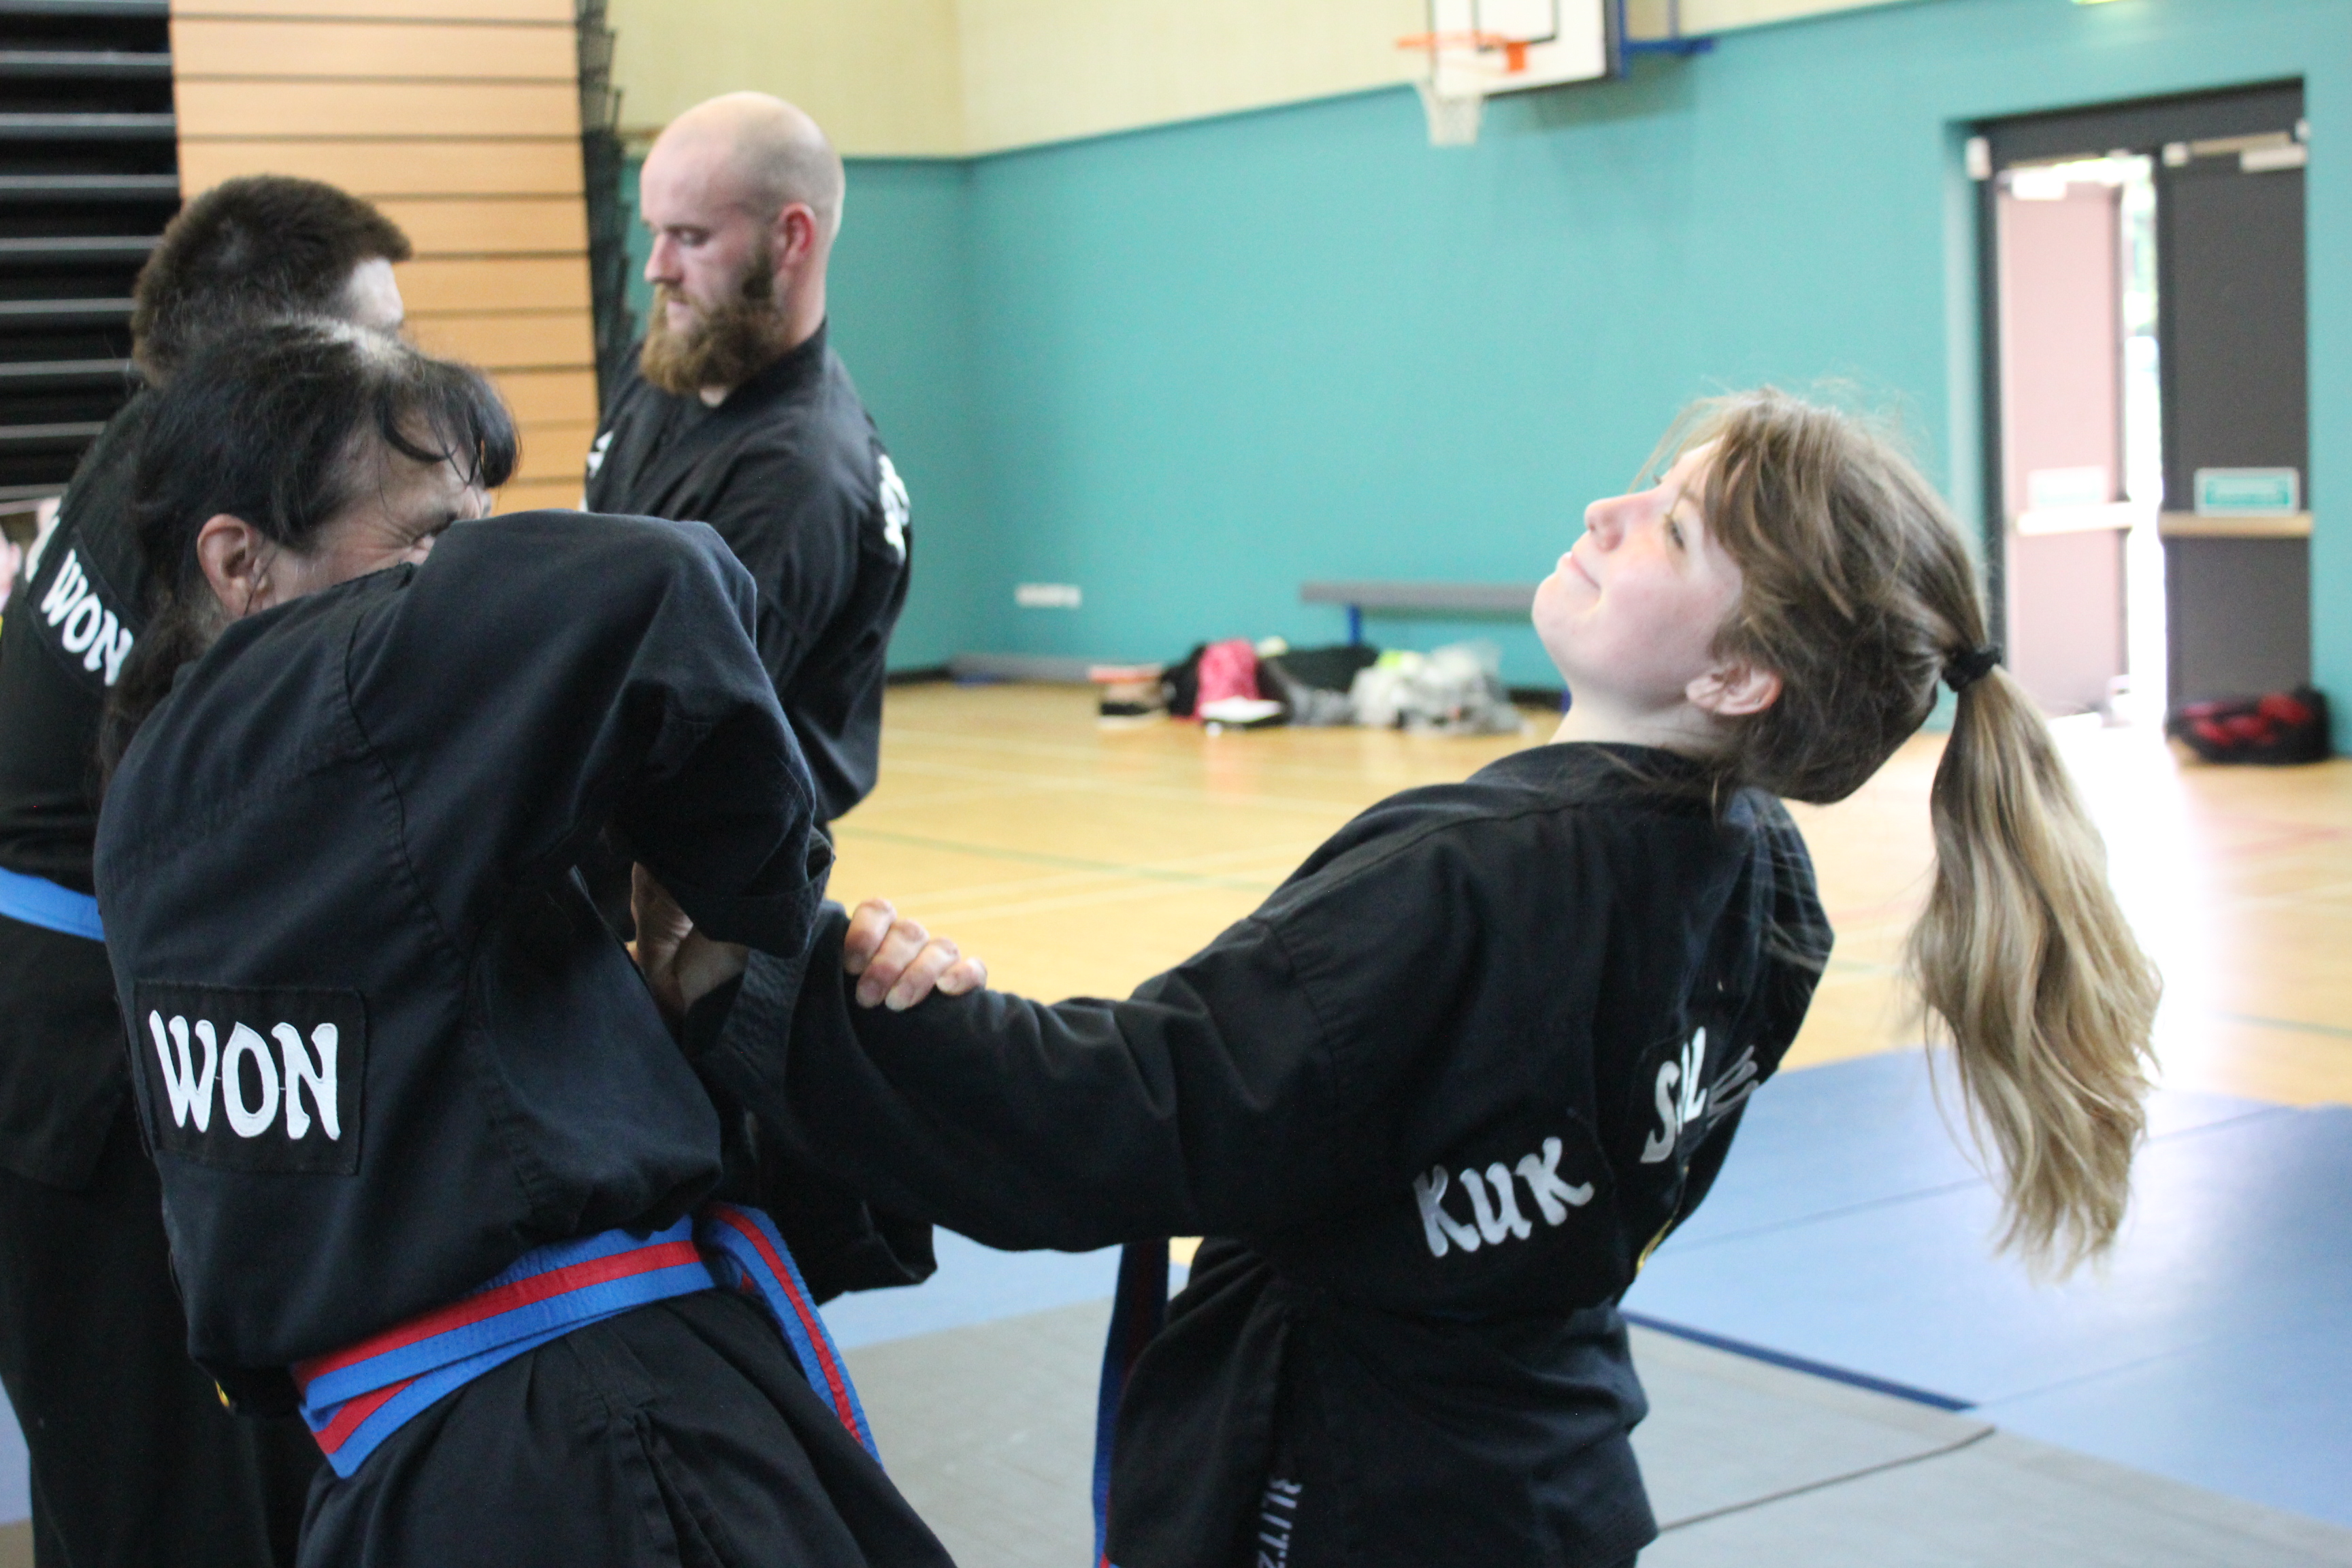 techniques martial arts in Perth